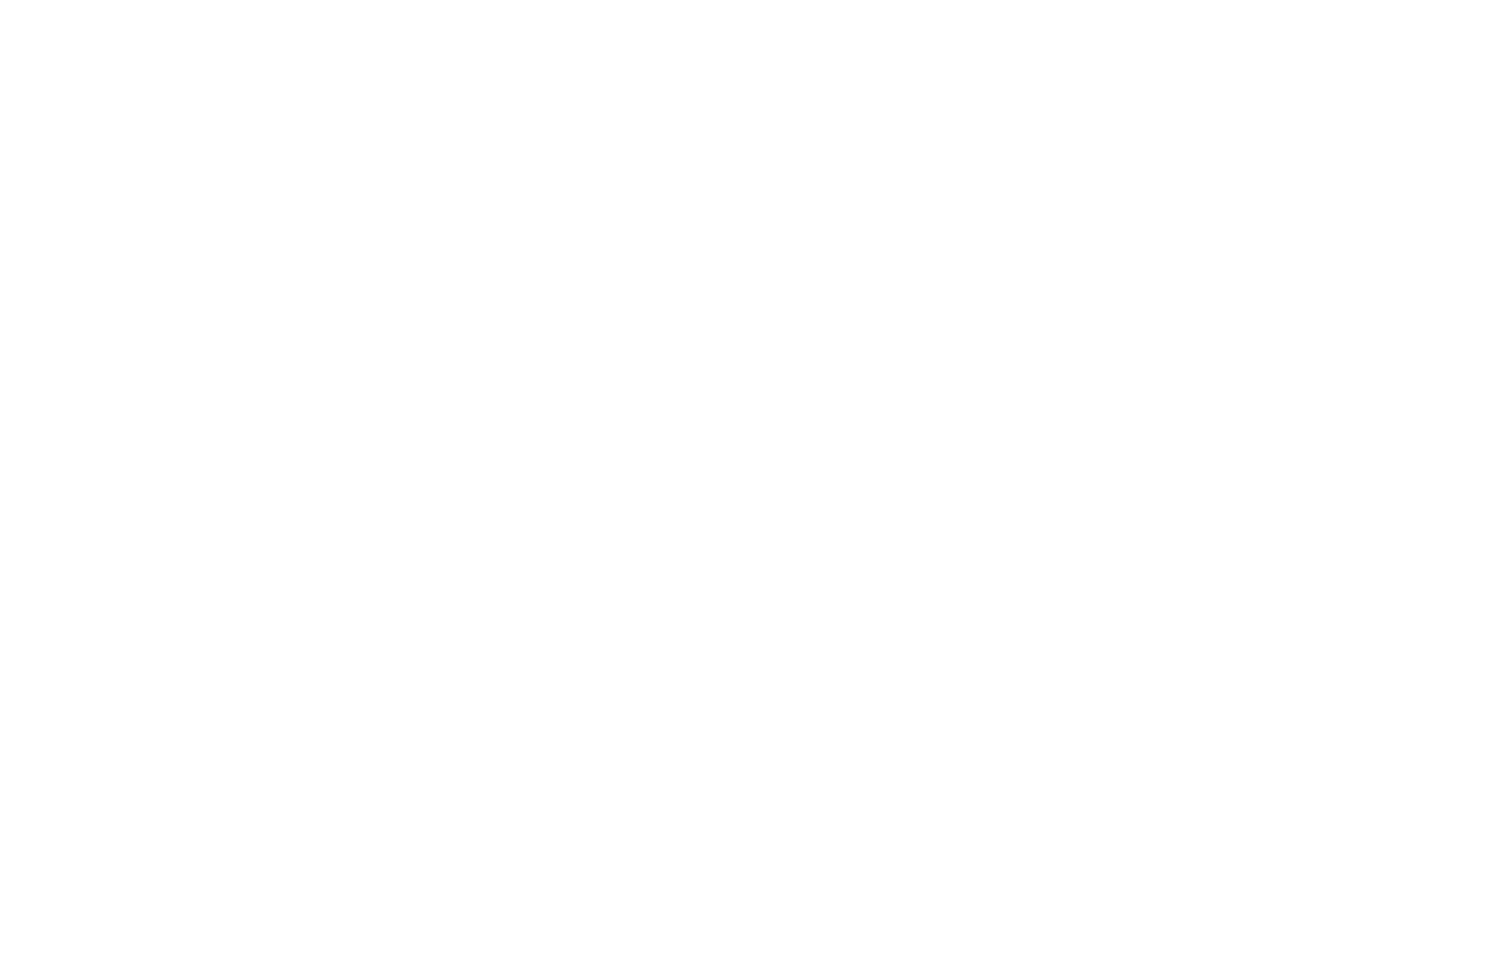 PrairieView School of Photography